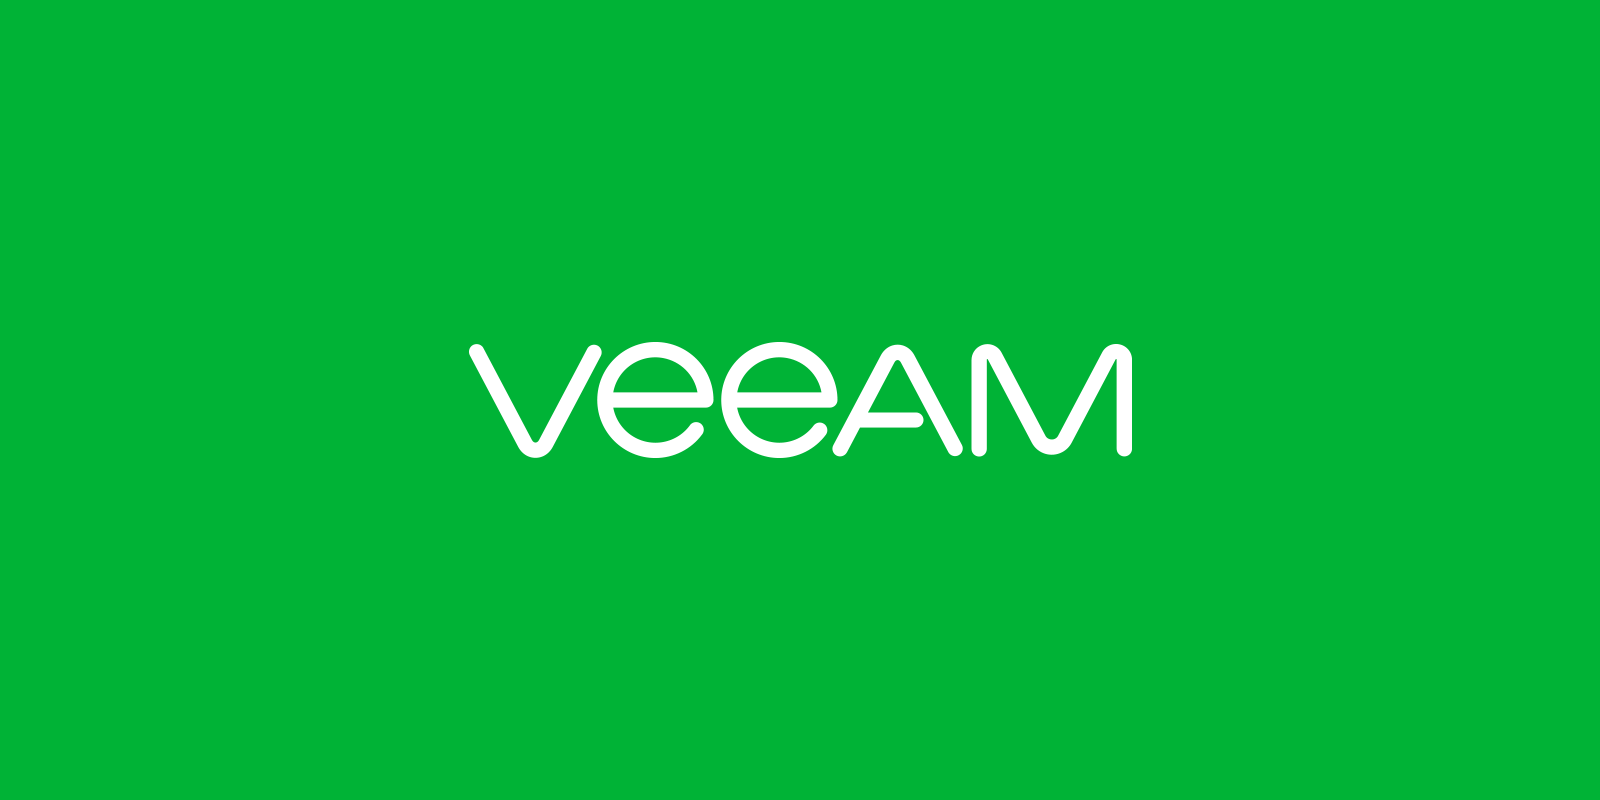 Veeam News